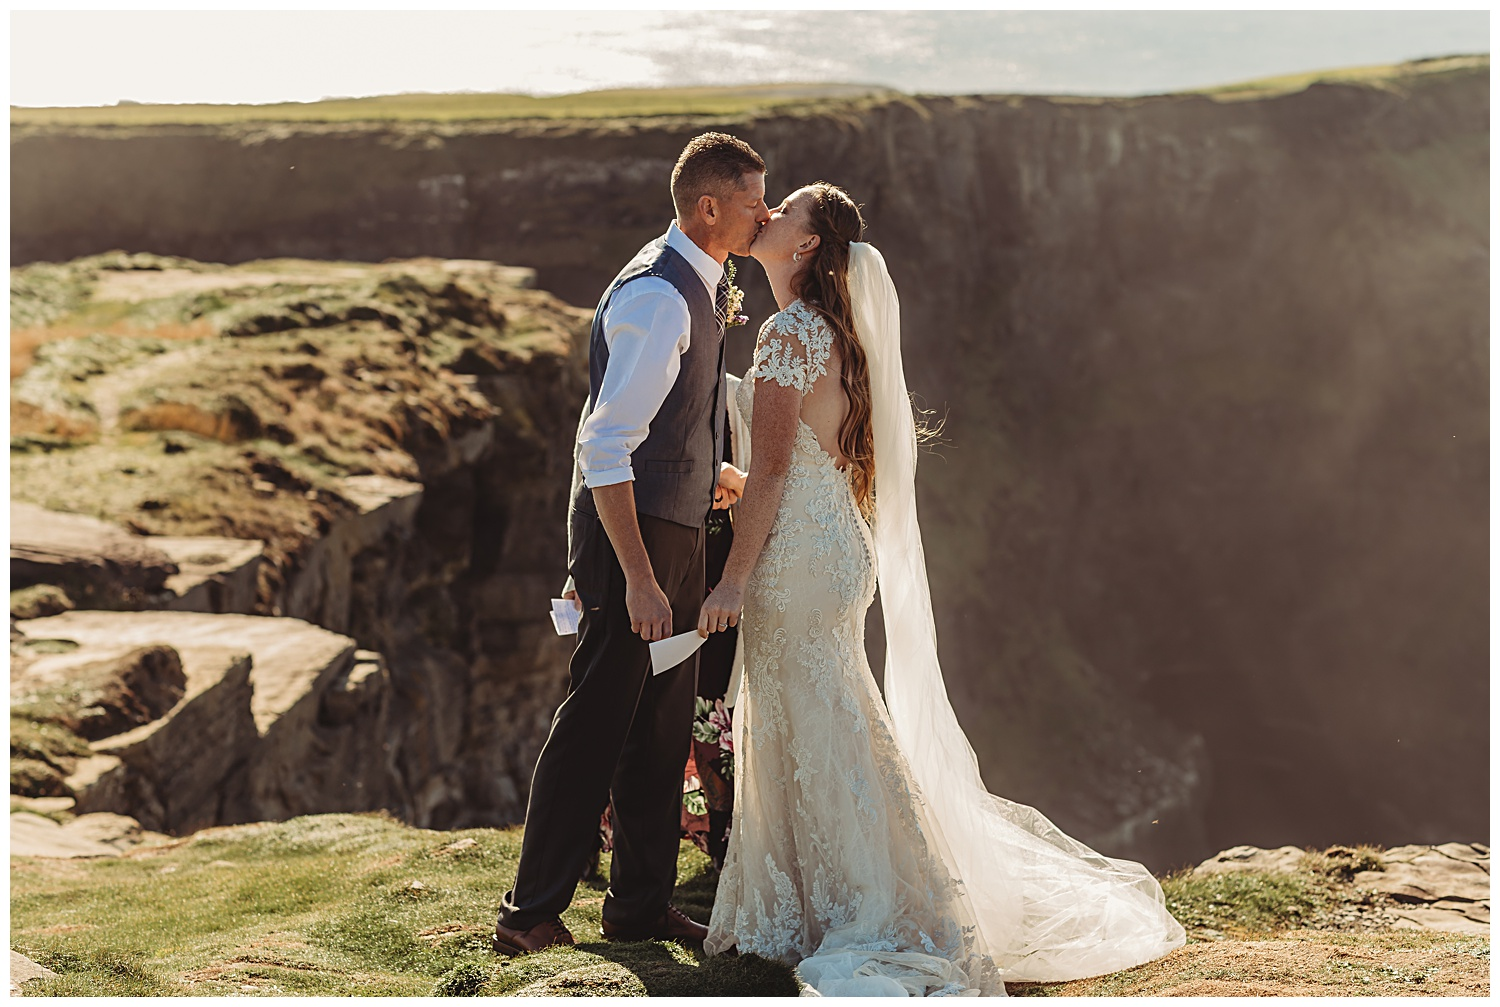 The Cliffs of Moher Destination Wedding Liscannor, County Clare, Ireland_1239.jpg